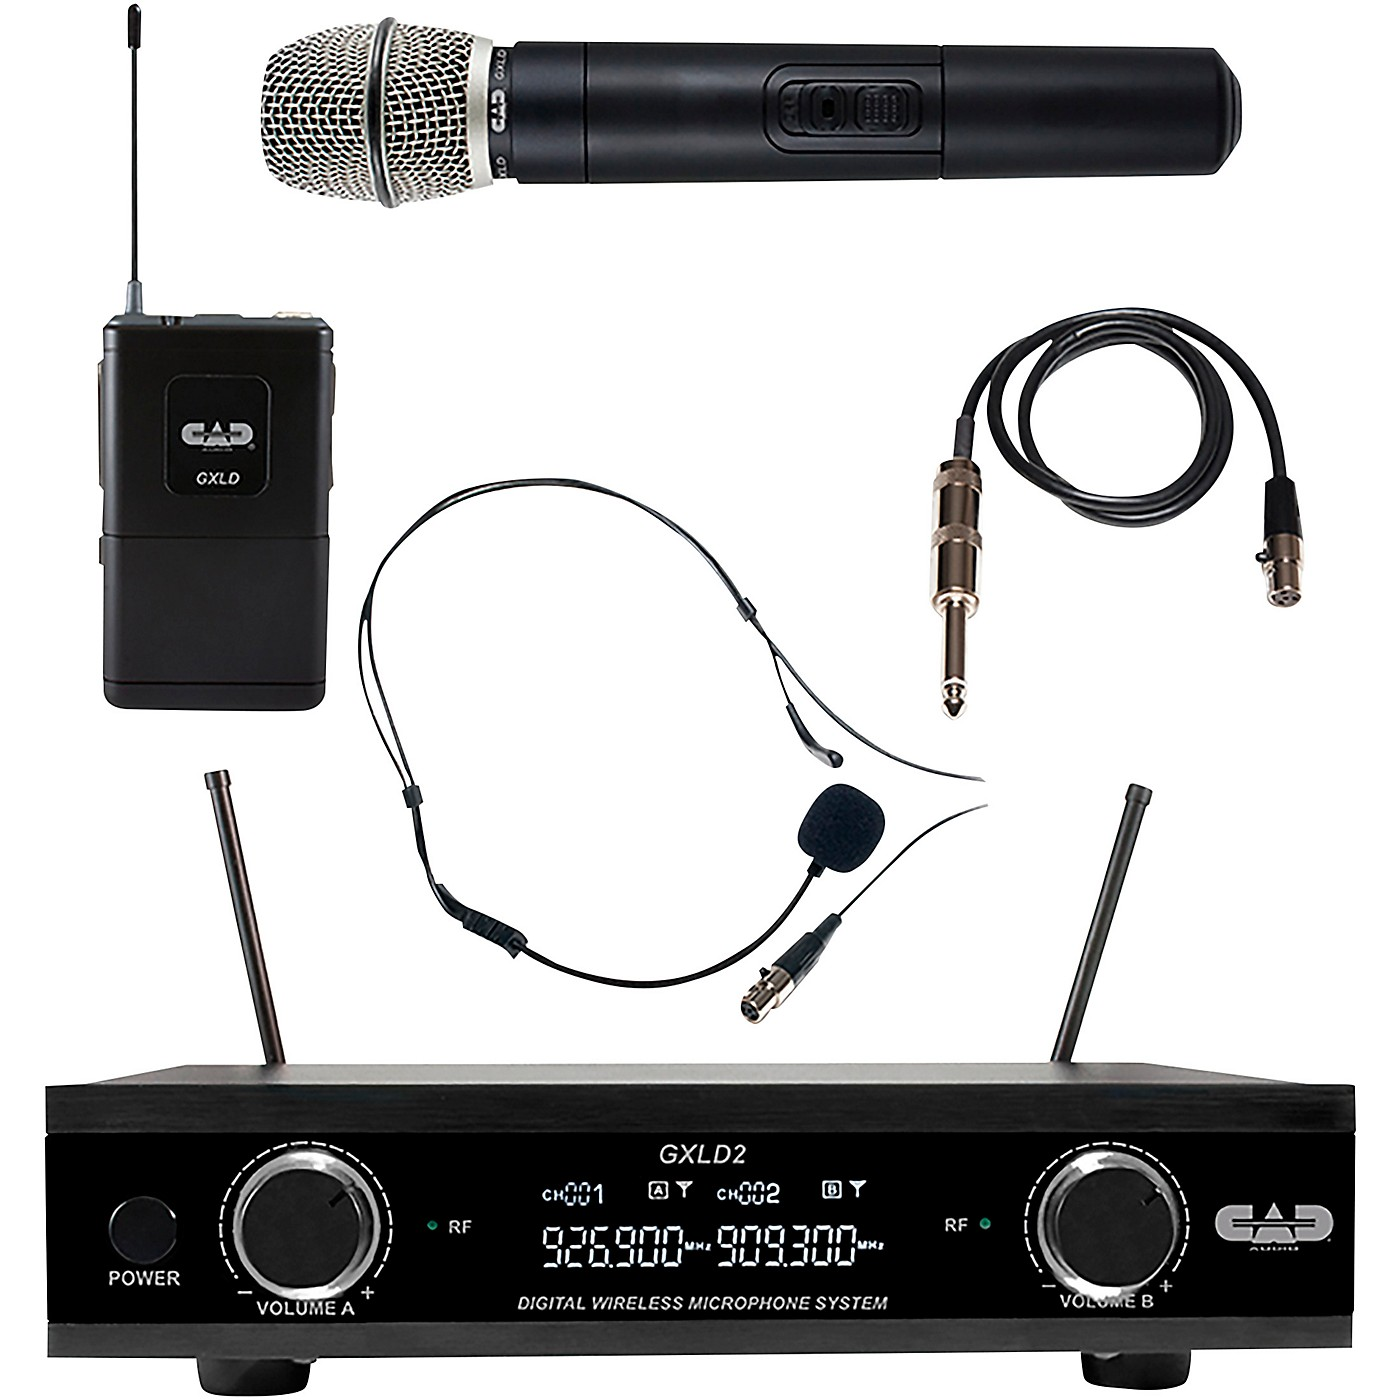 CAD GXLD2HBAH Digital Dual Channel Wireless System handheld and bodypack microphone system thumbnail